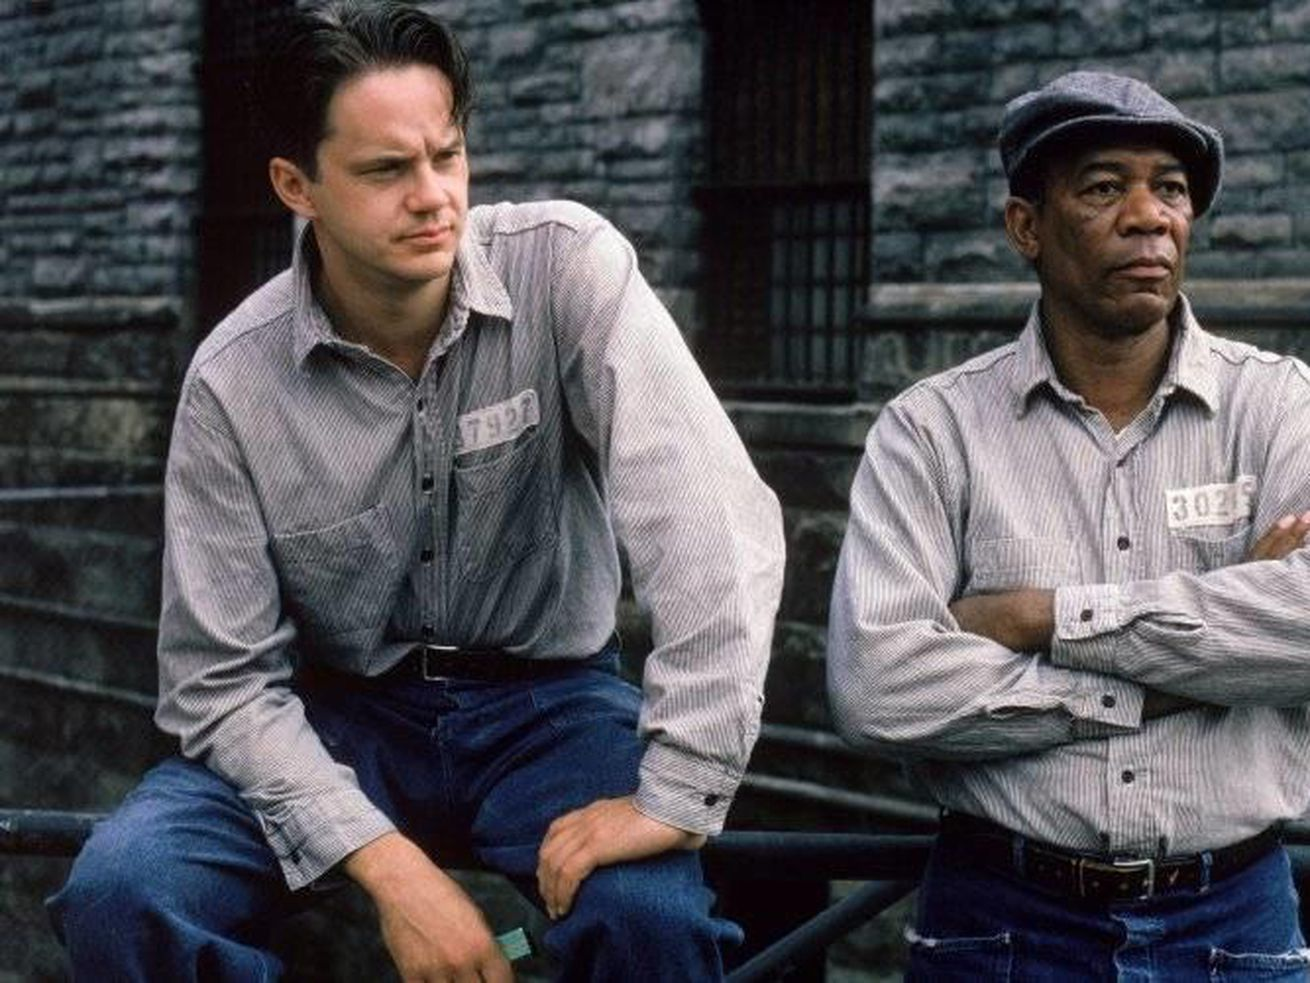 Your Weekend: 'The Shawshank Redemption' comes back to theaters